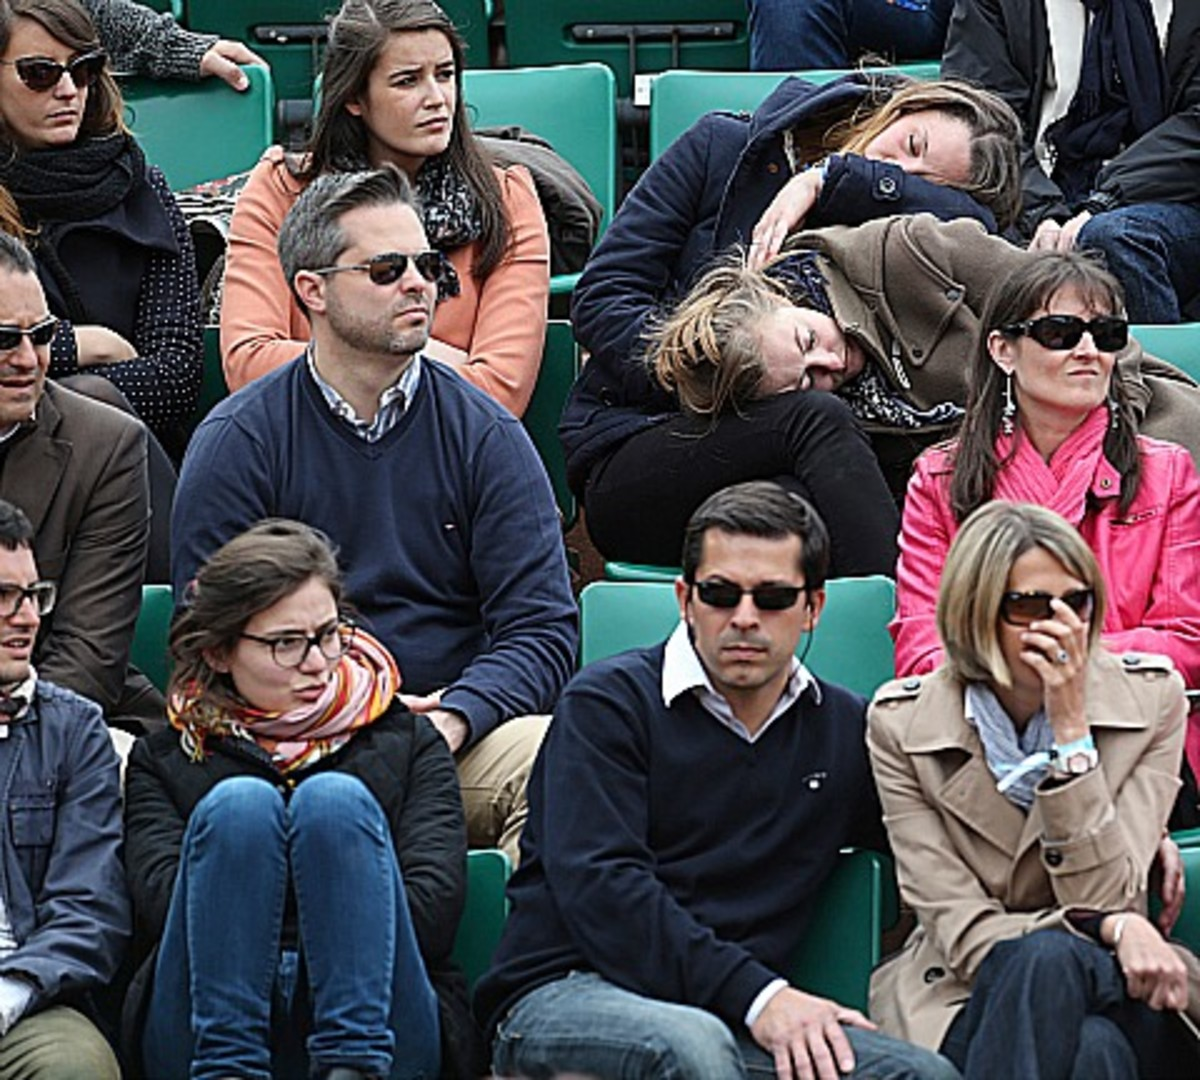 Two women sleep while Spain's David Ferrer plays against Australia's Marinko Matosevic in their first round match of the French Open tennis tournament, at Roland Garros stadium in Paris, Sunday, May 26, 2013. (AP Photo/Michel Euler)